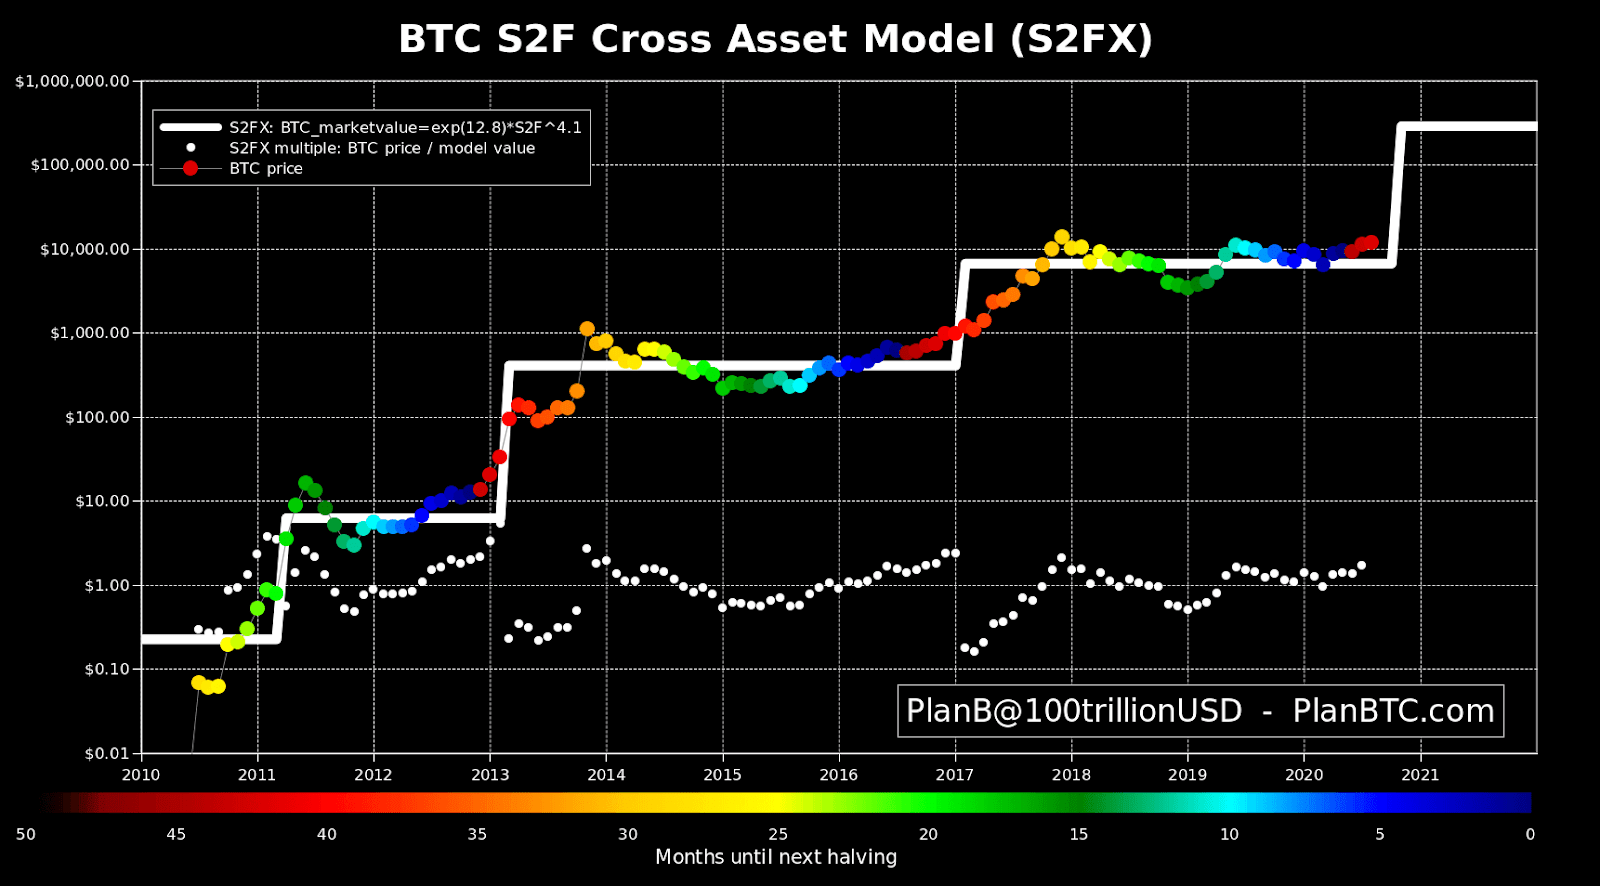 Bitcoin S2F cross asset model